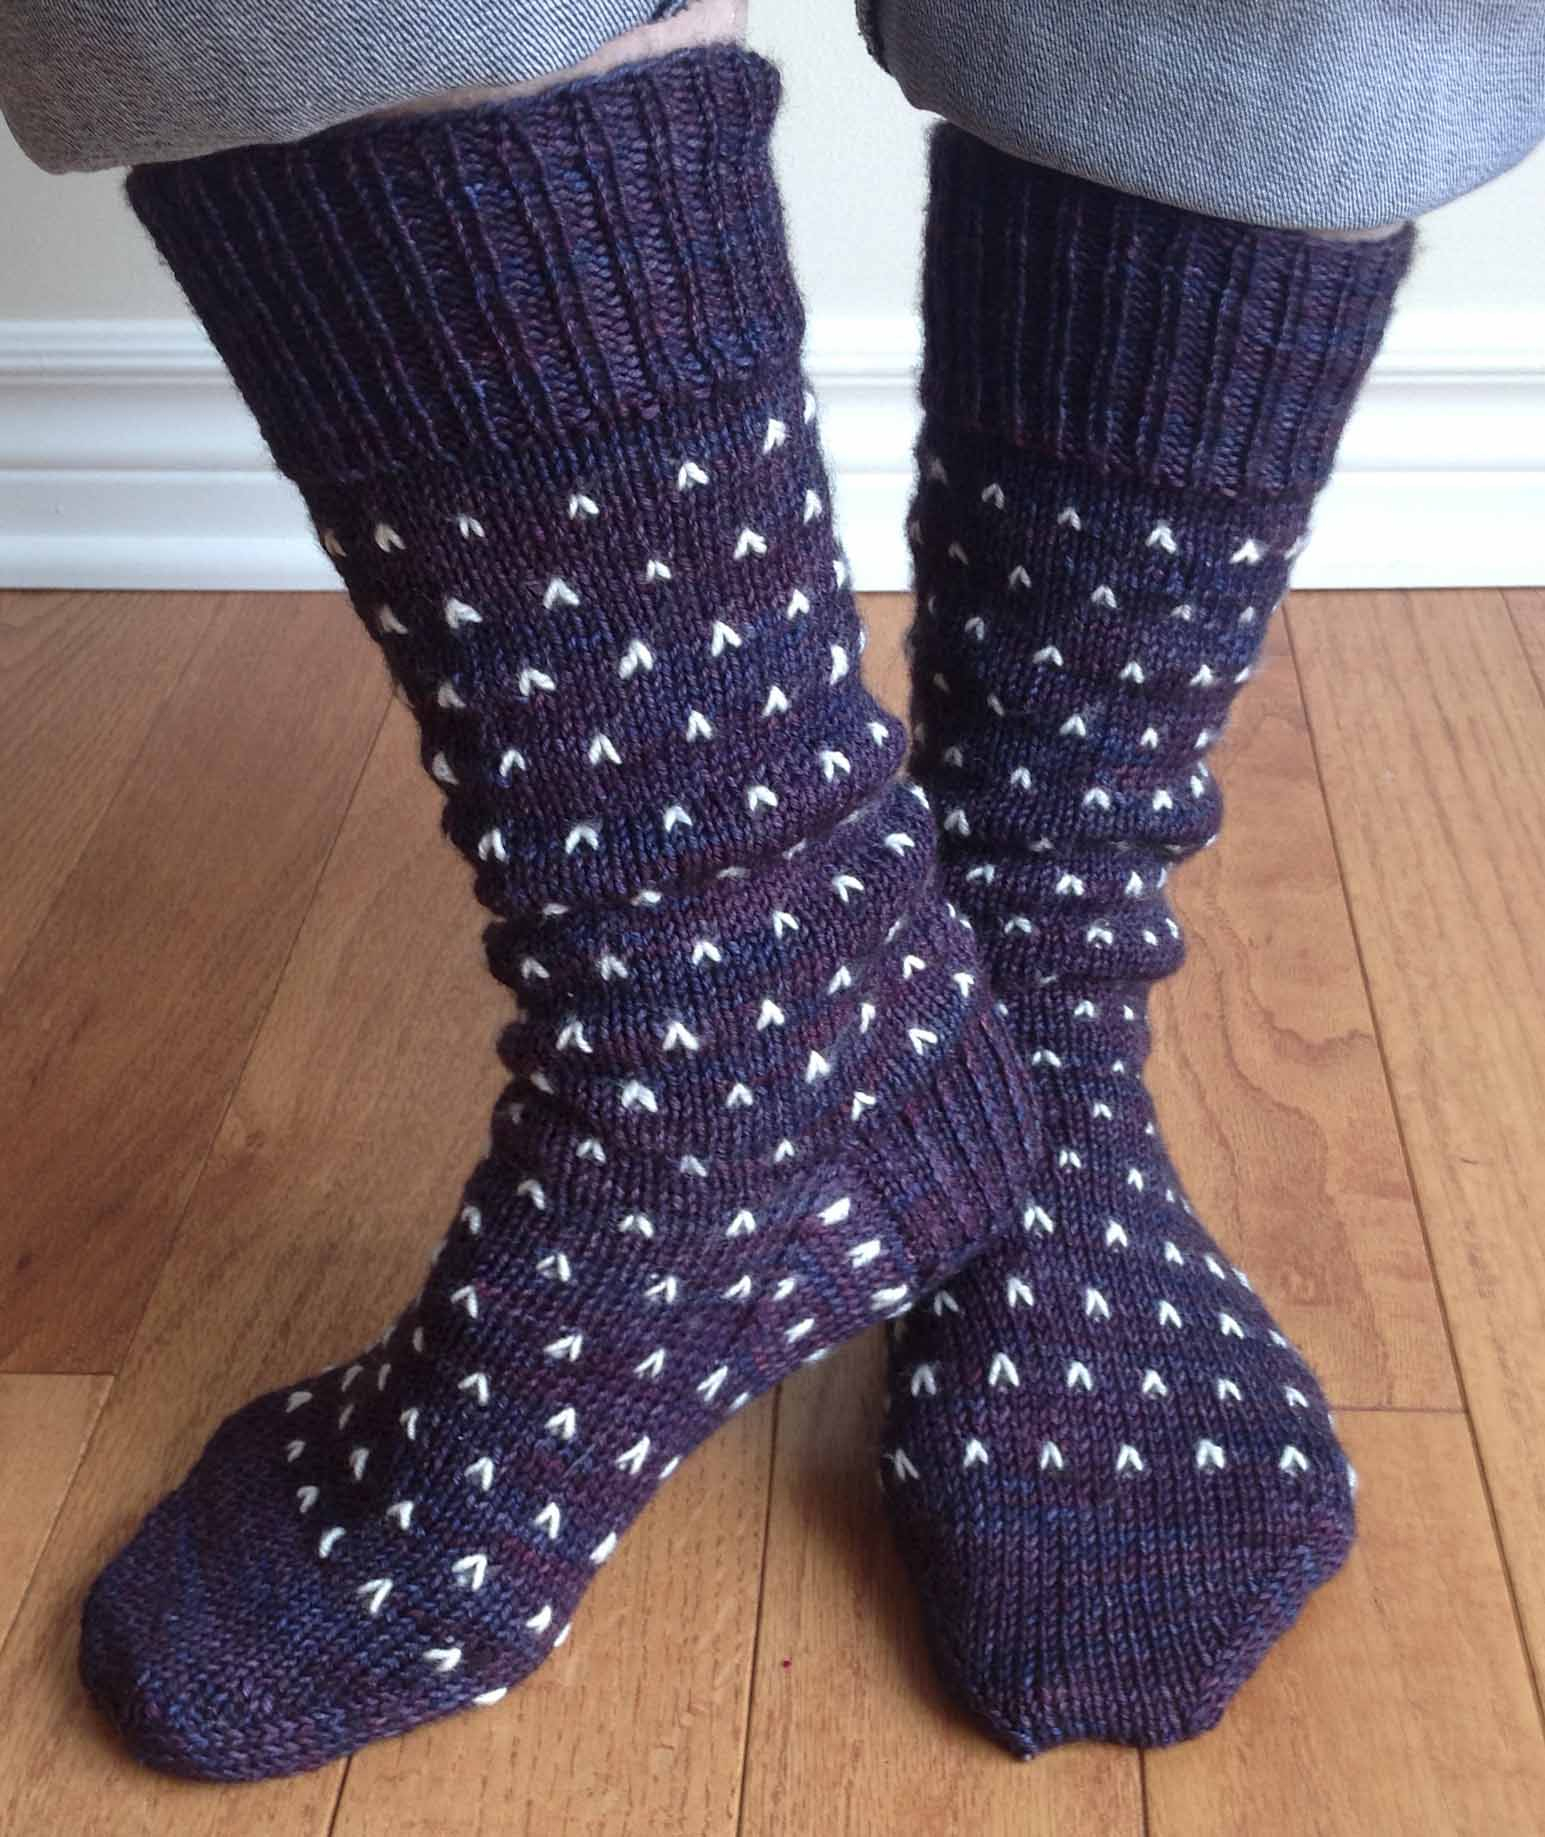 Free Knitting Patterns For Socks On Four Needles Free Knitting Patterns